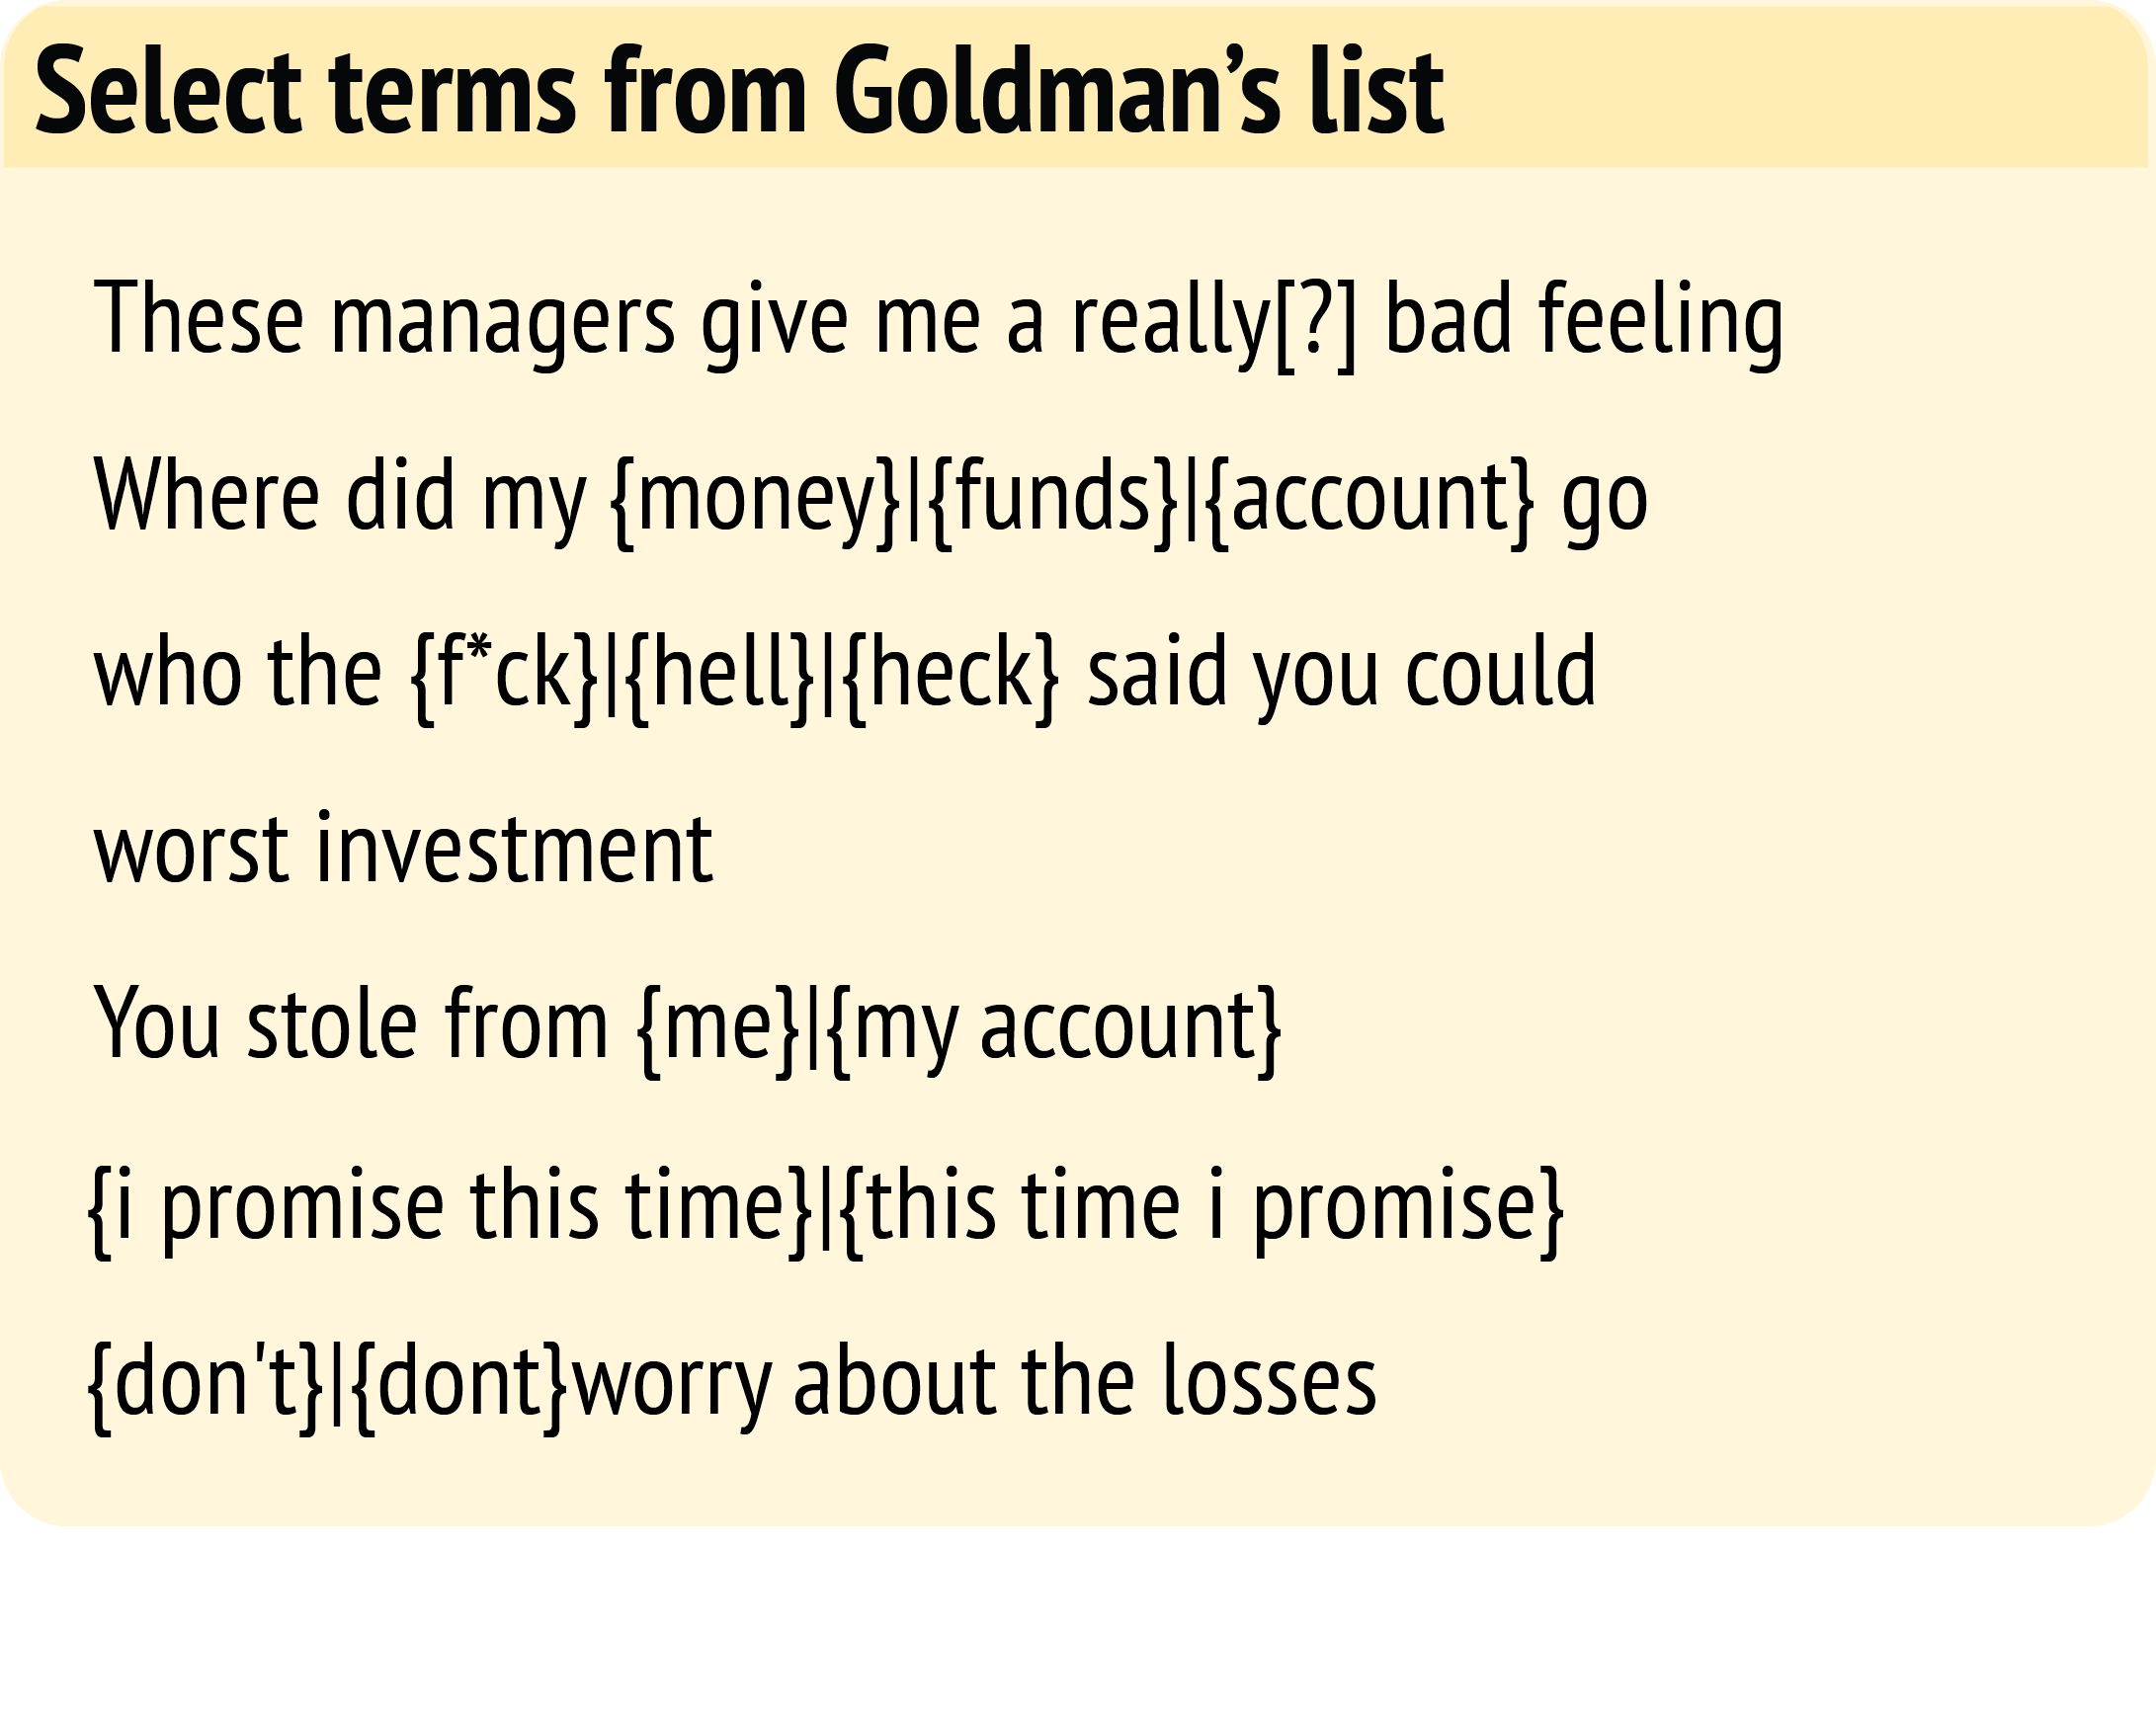 How To Close A Presentation Goldman Sachs Also Monitored For Email About  Calling Financial Regulators Oranizations, Including The Sec,